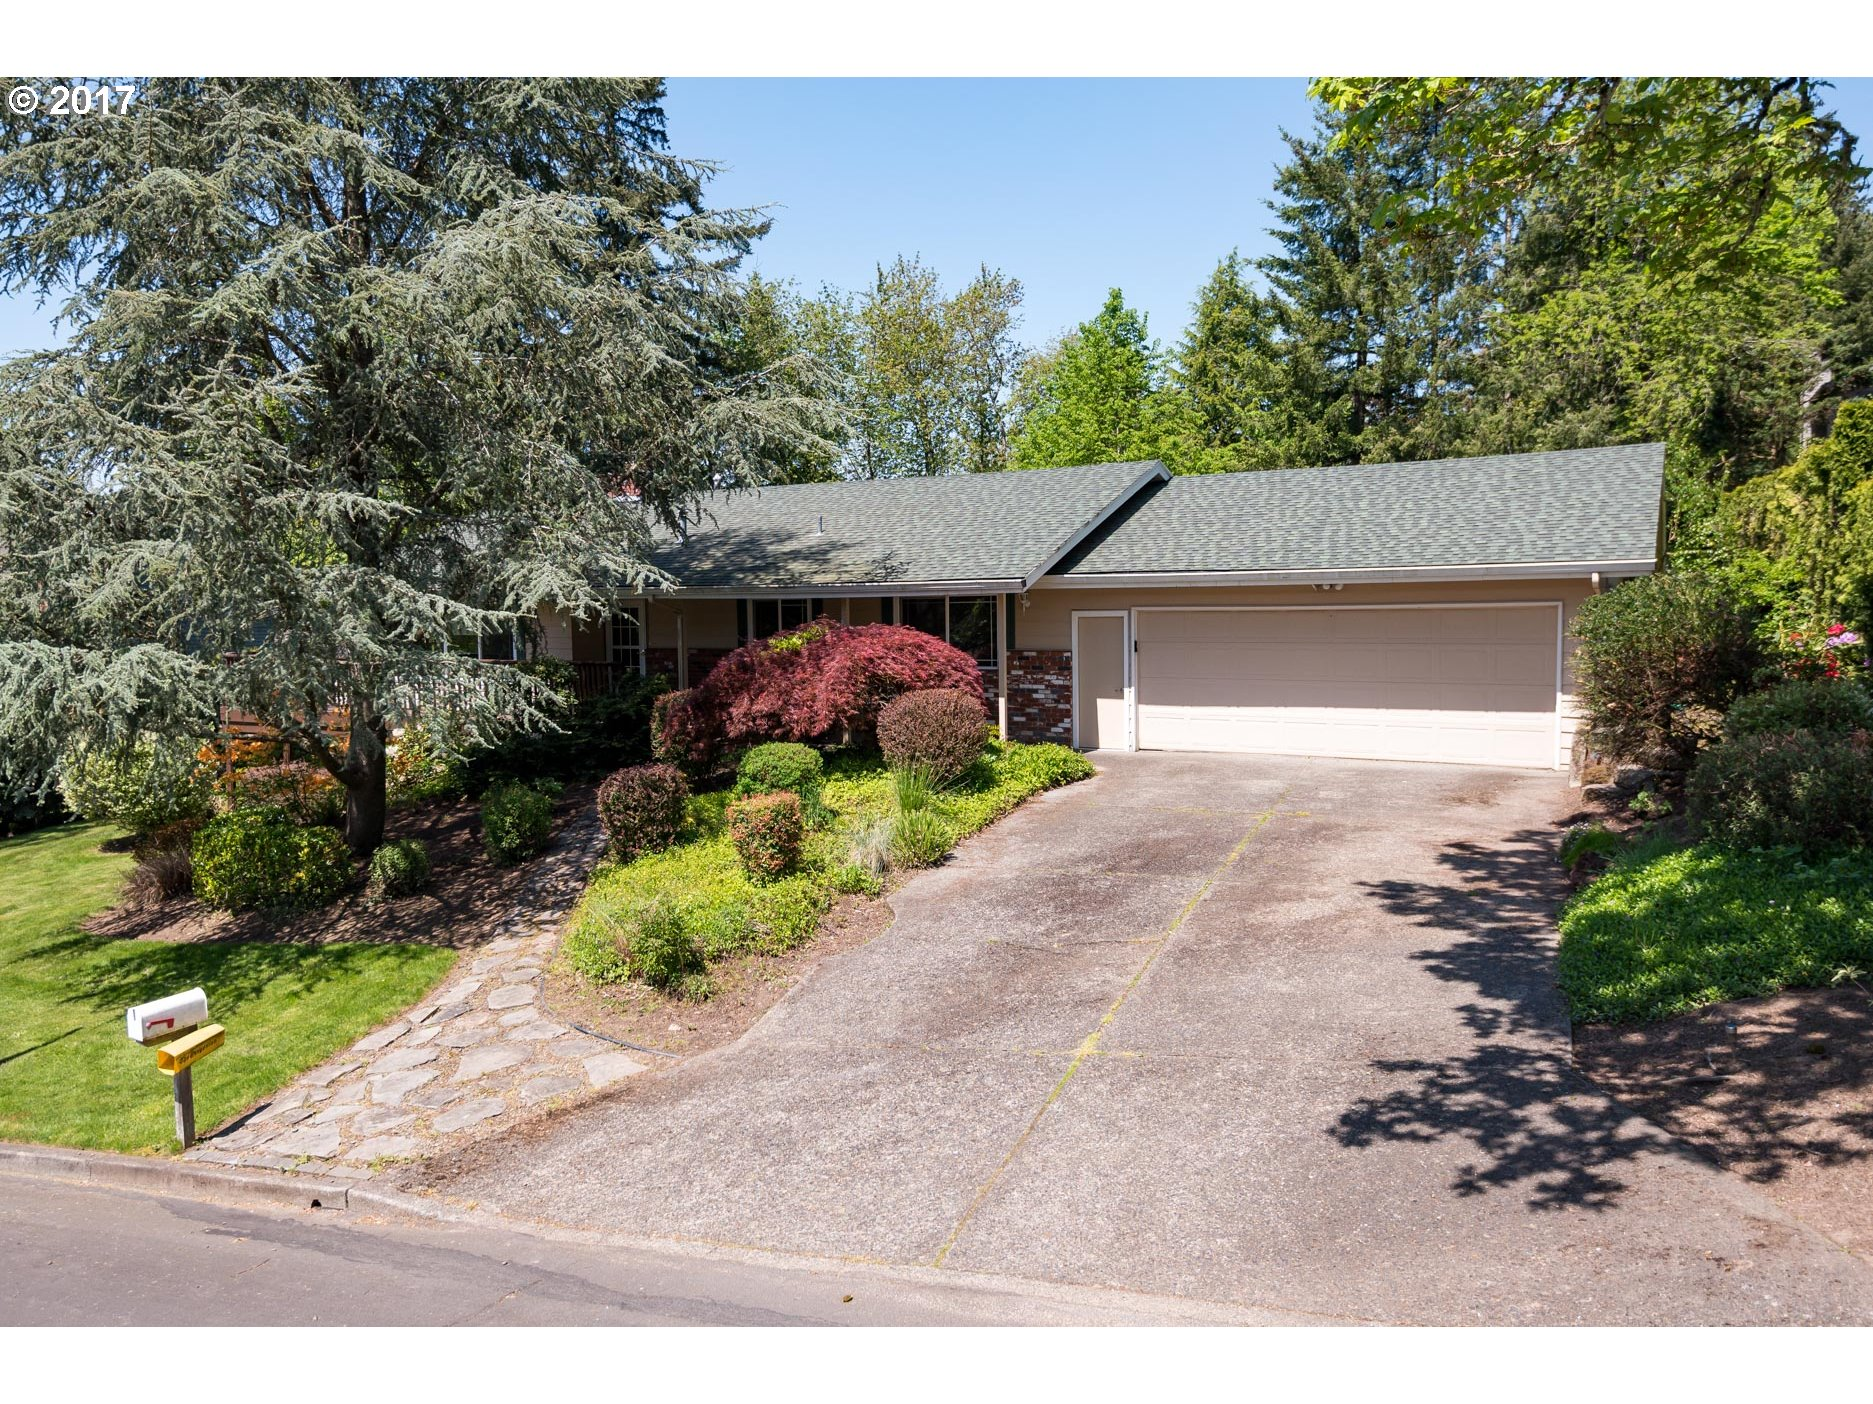 3707 OLSON CT, Lake Oswego OR 97034